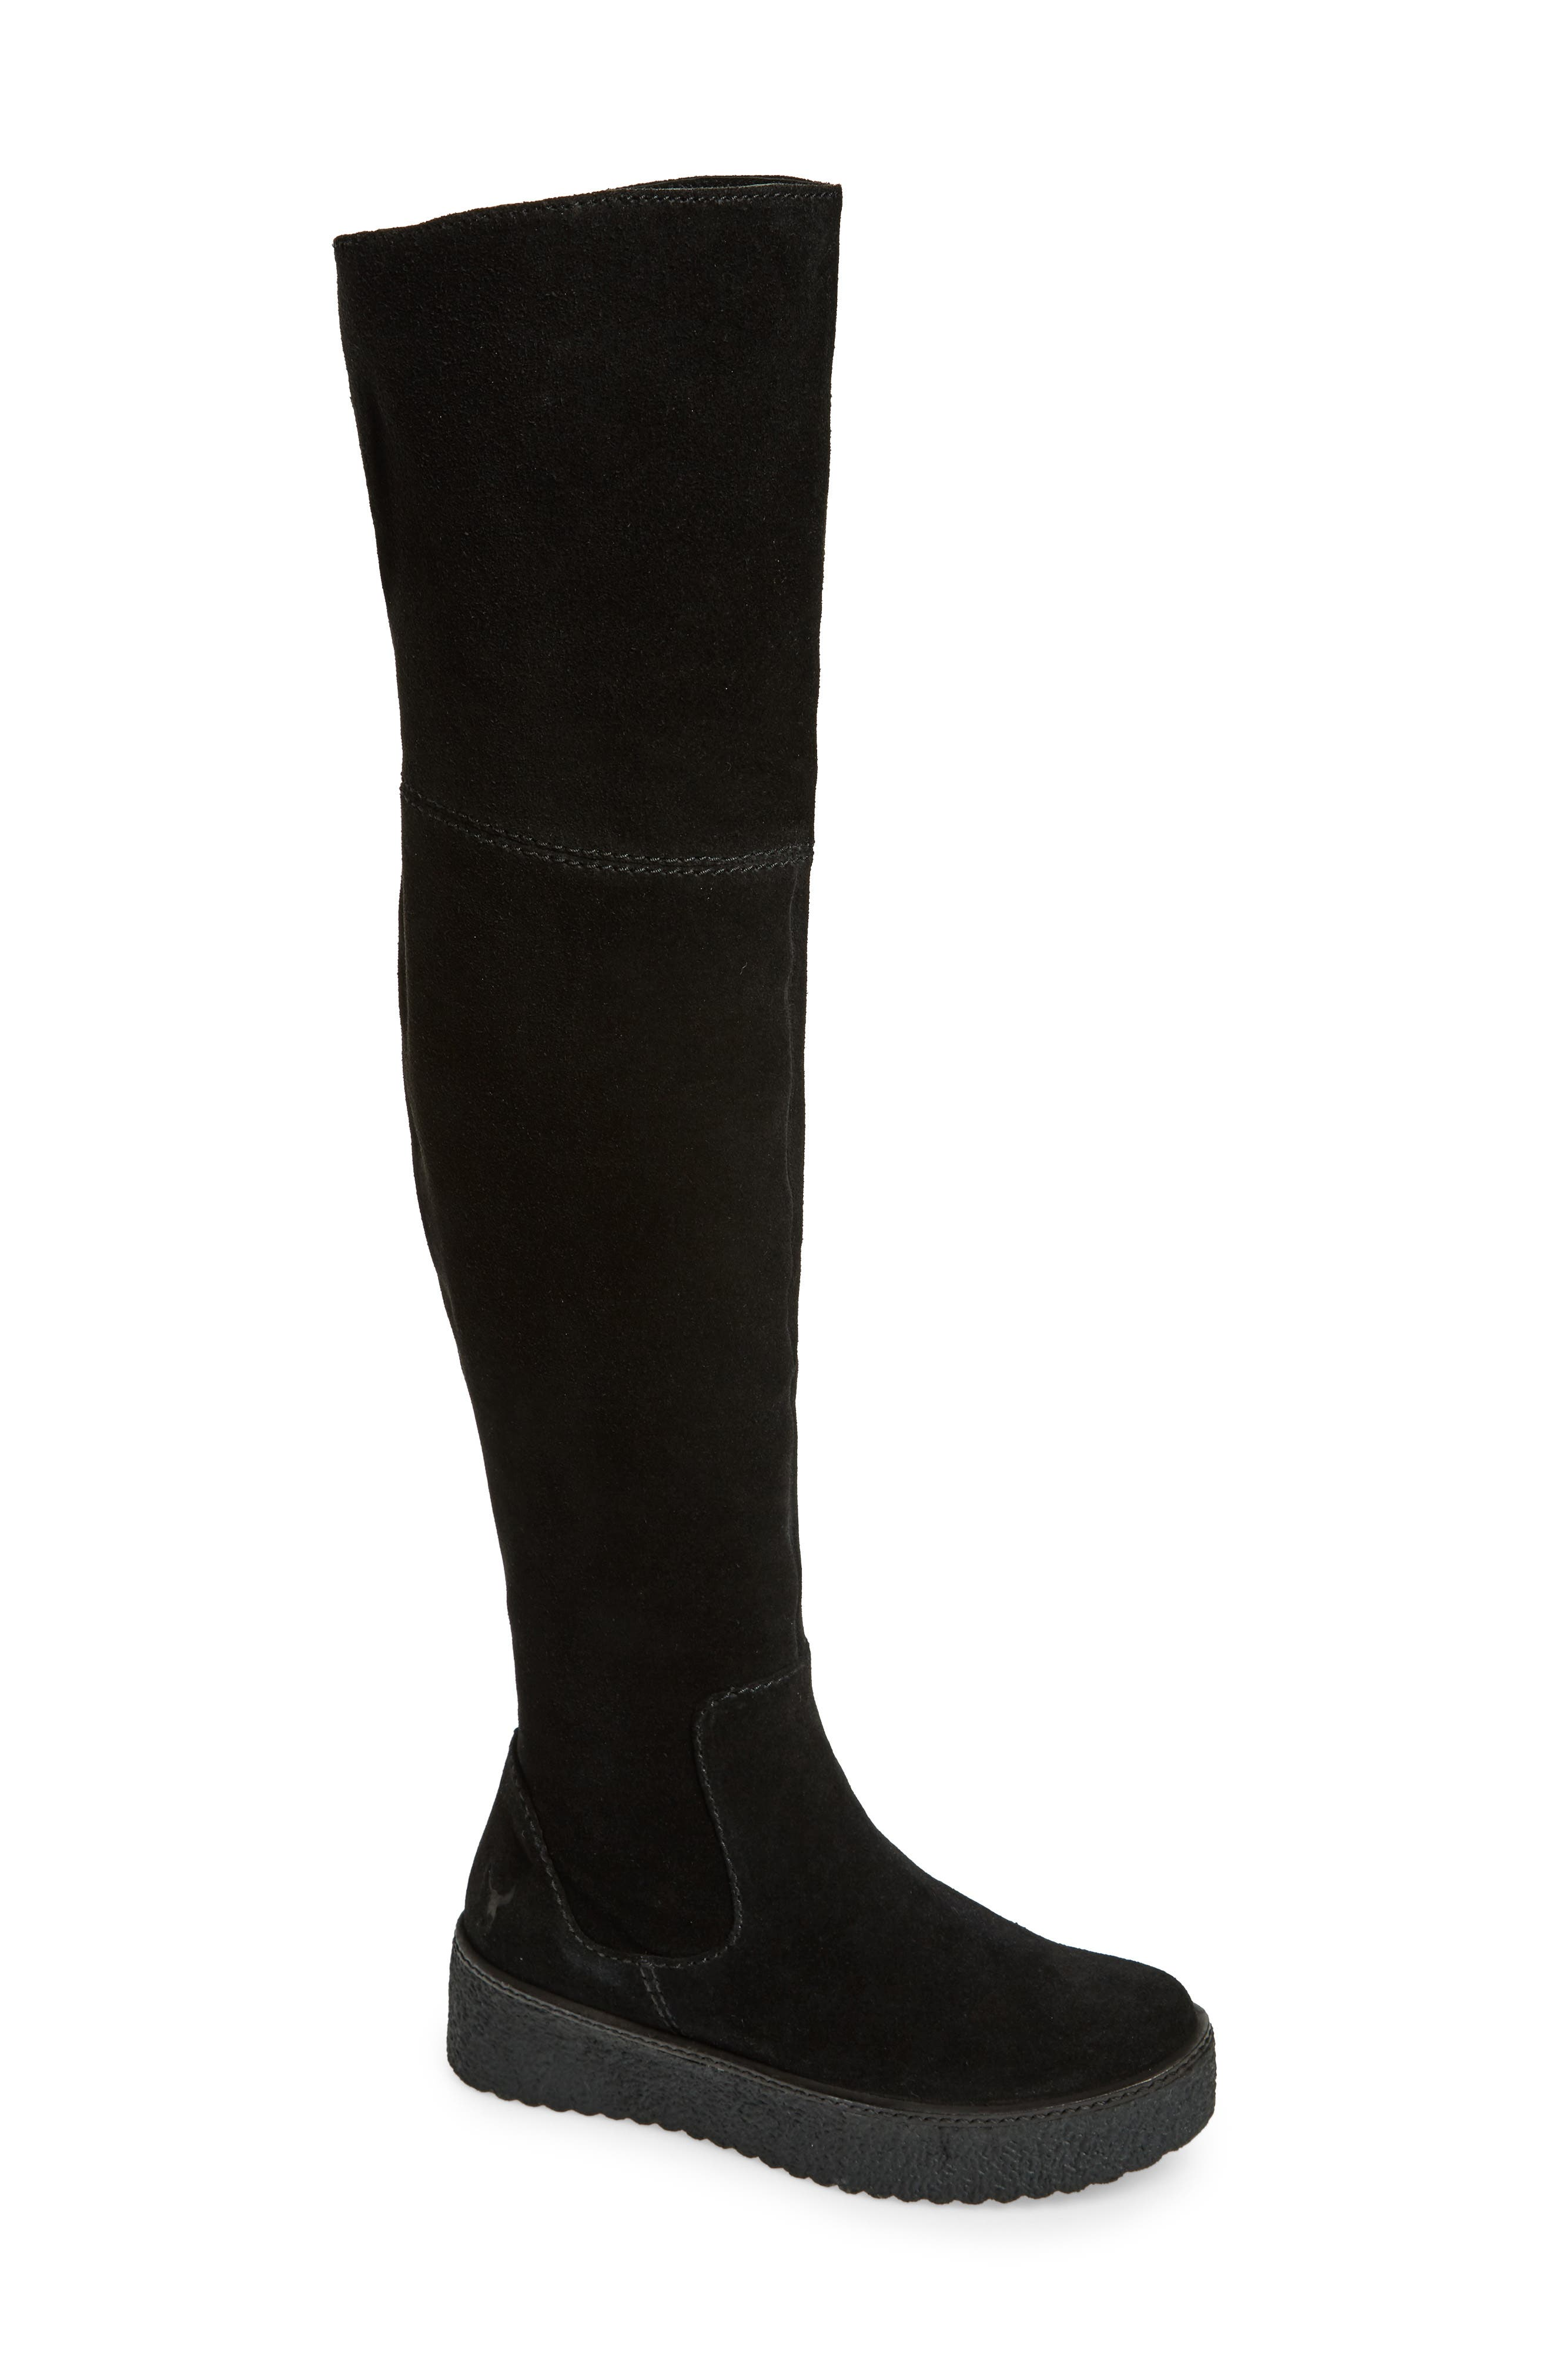 Tazza Over the Knee Boot,                             Main thumbnail 1, color,